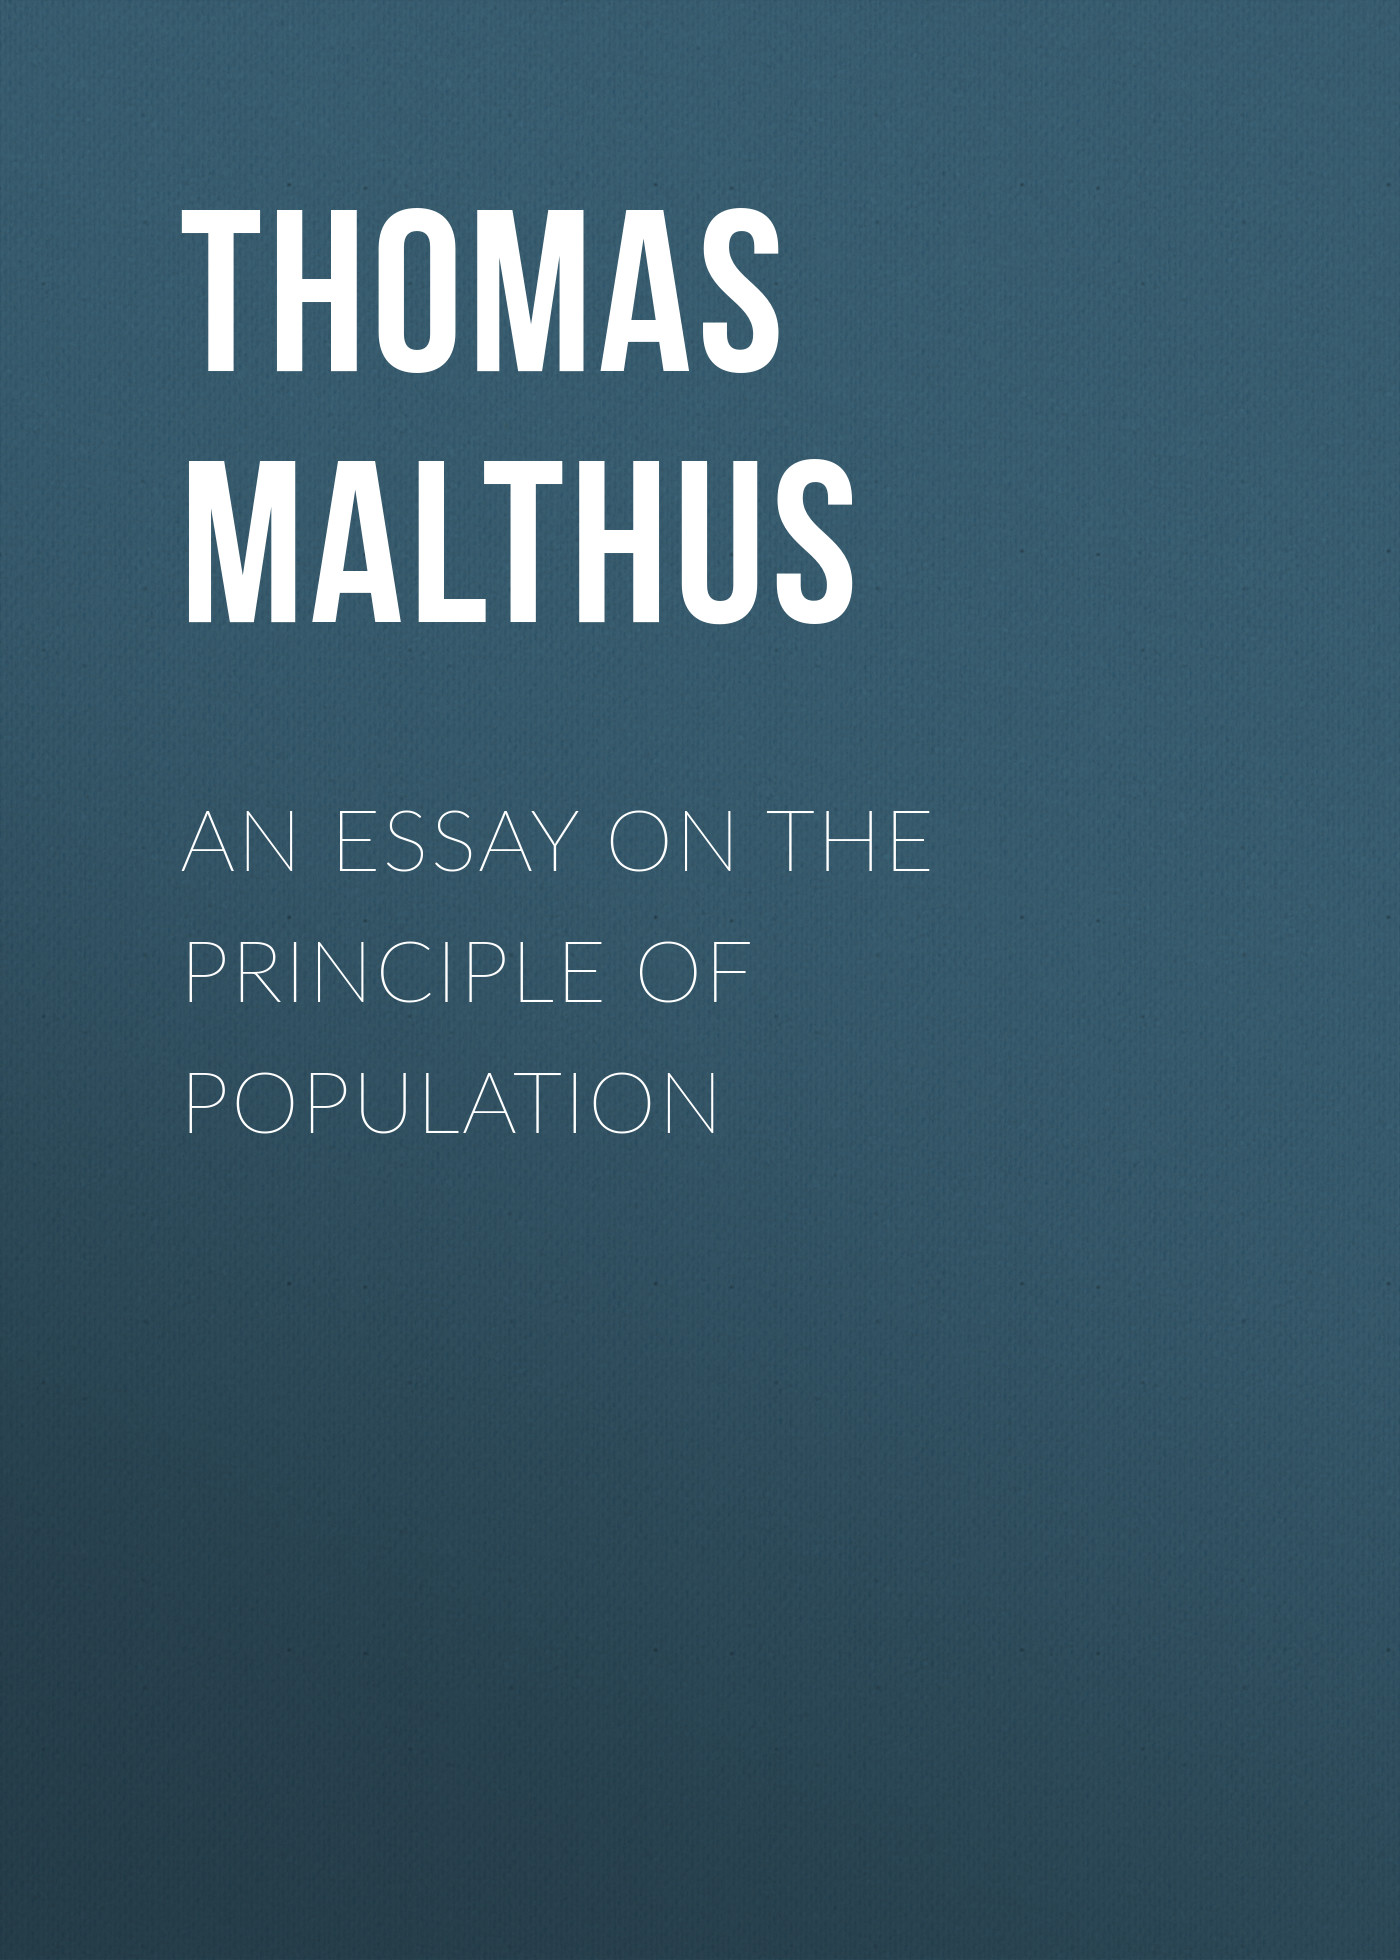 Thomas Malthus An Essay on the Principle of Population thomas robert maltus thomas robert malthus an essay on the principle of population vol 1